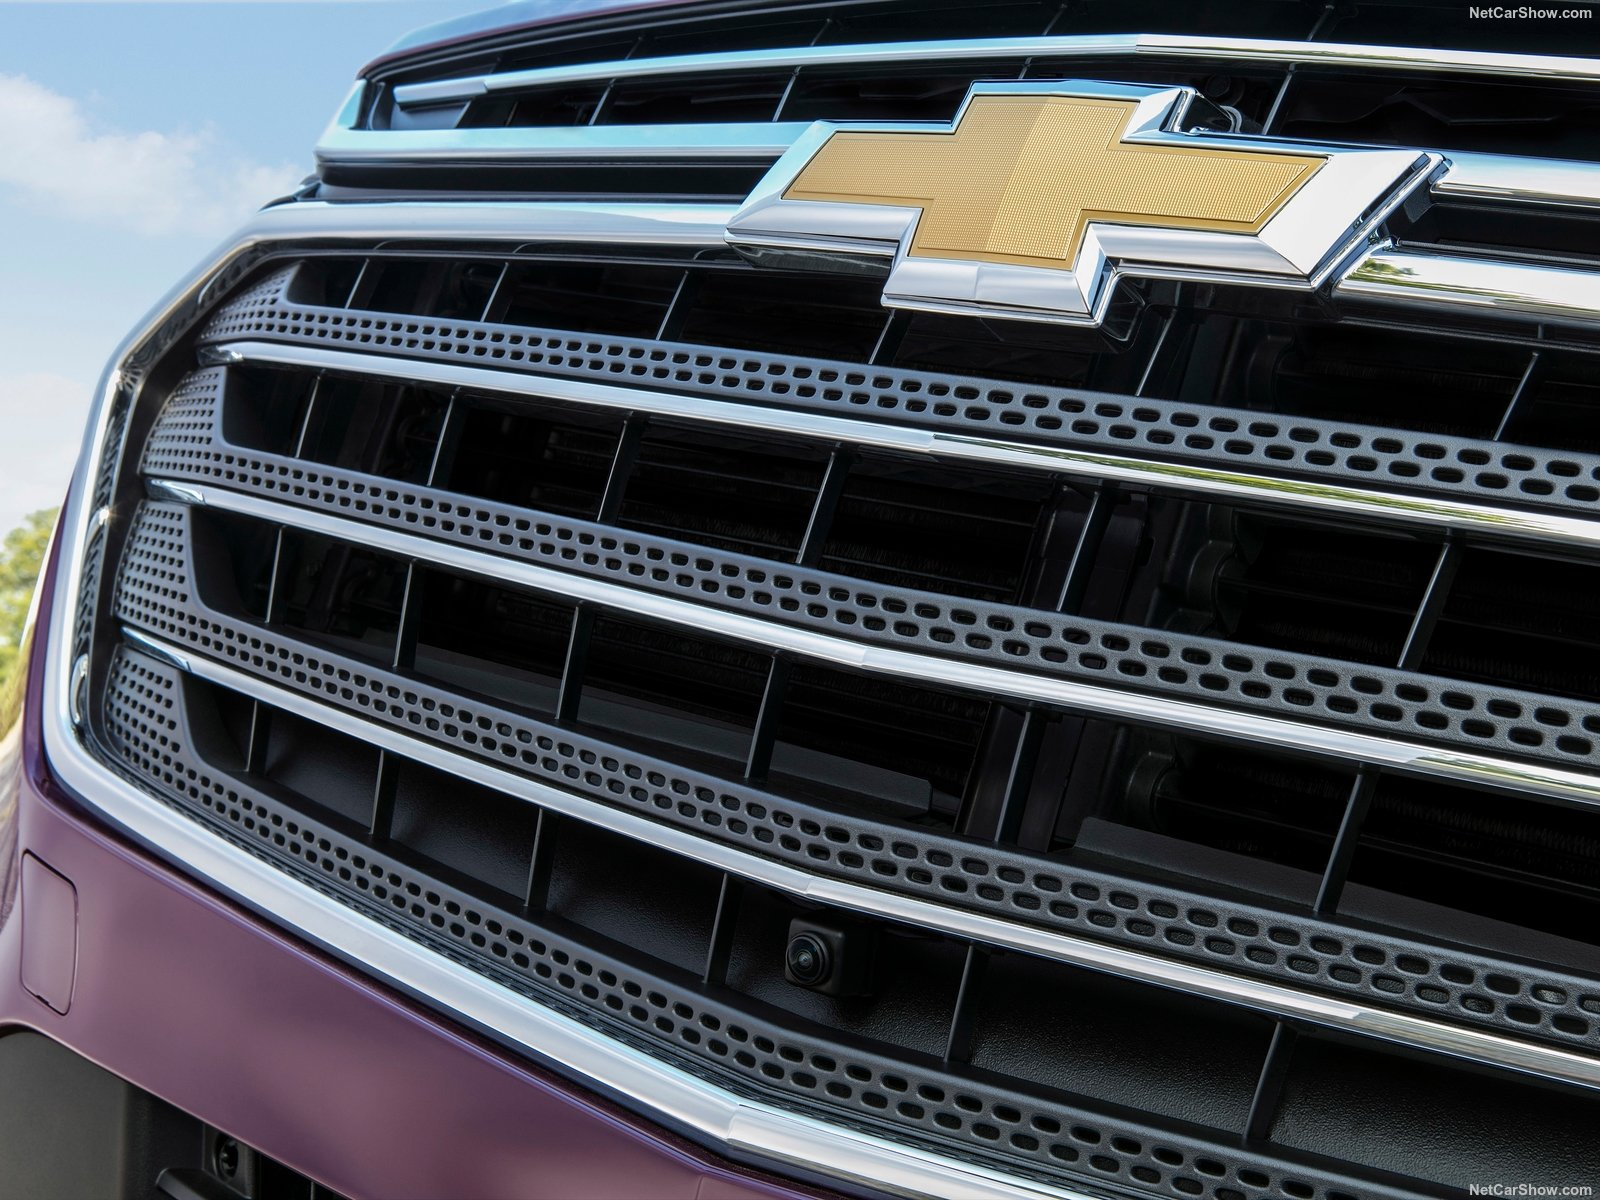 Chevrolet Traverse photo 182018